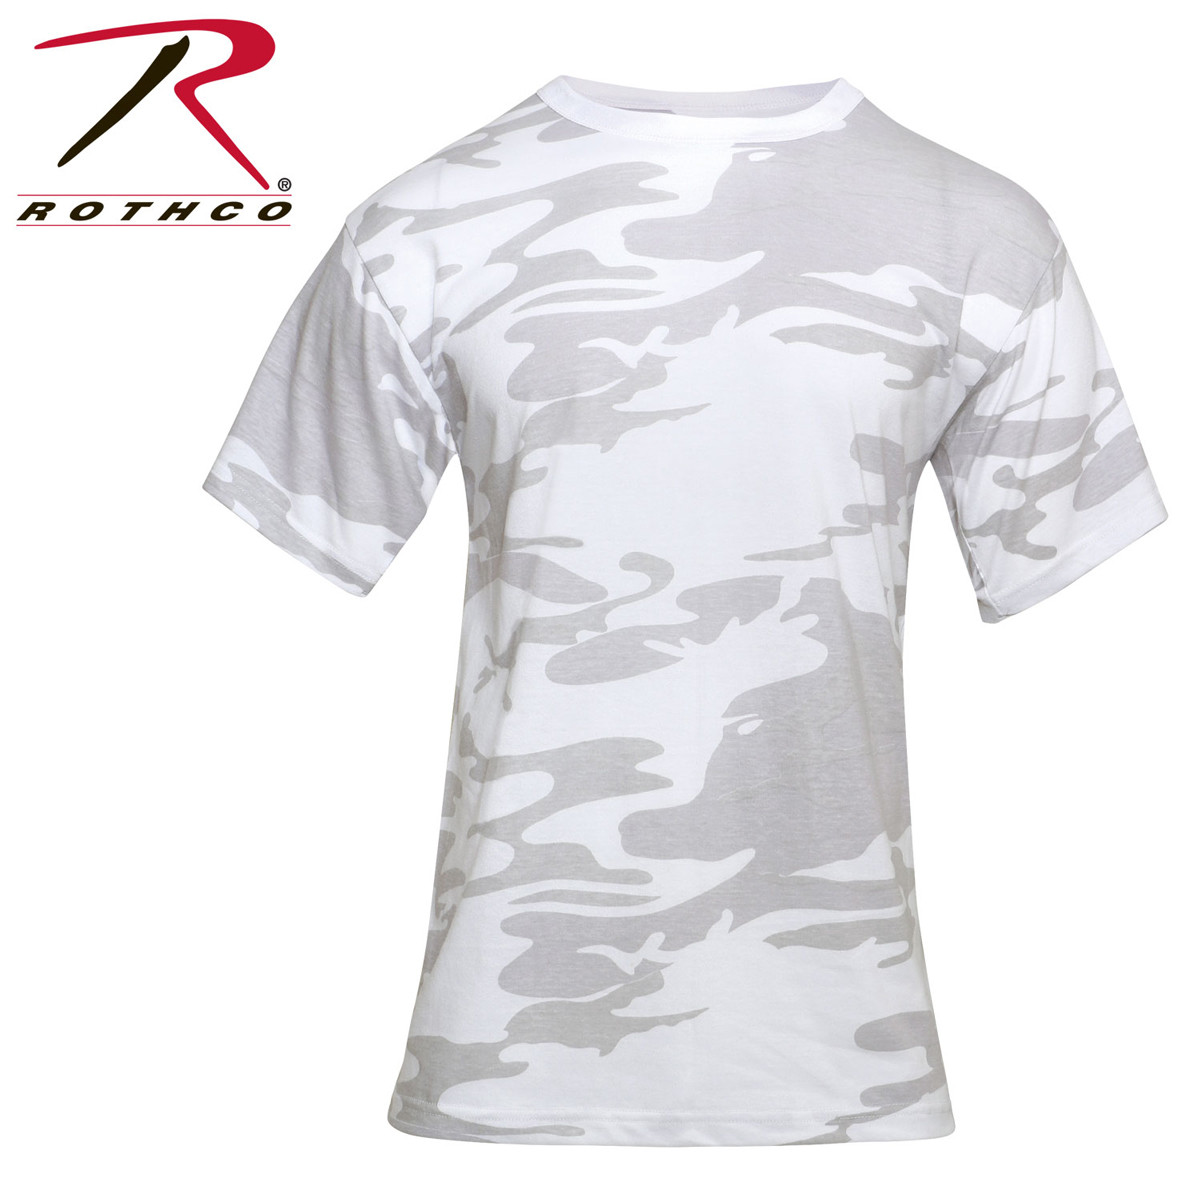 9f4c4fae Shop White Camo T Shirts - Fatigues Army Navy Gear